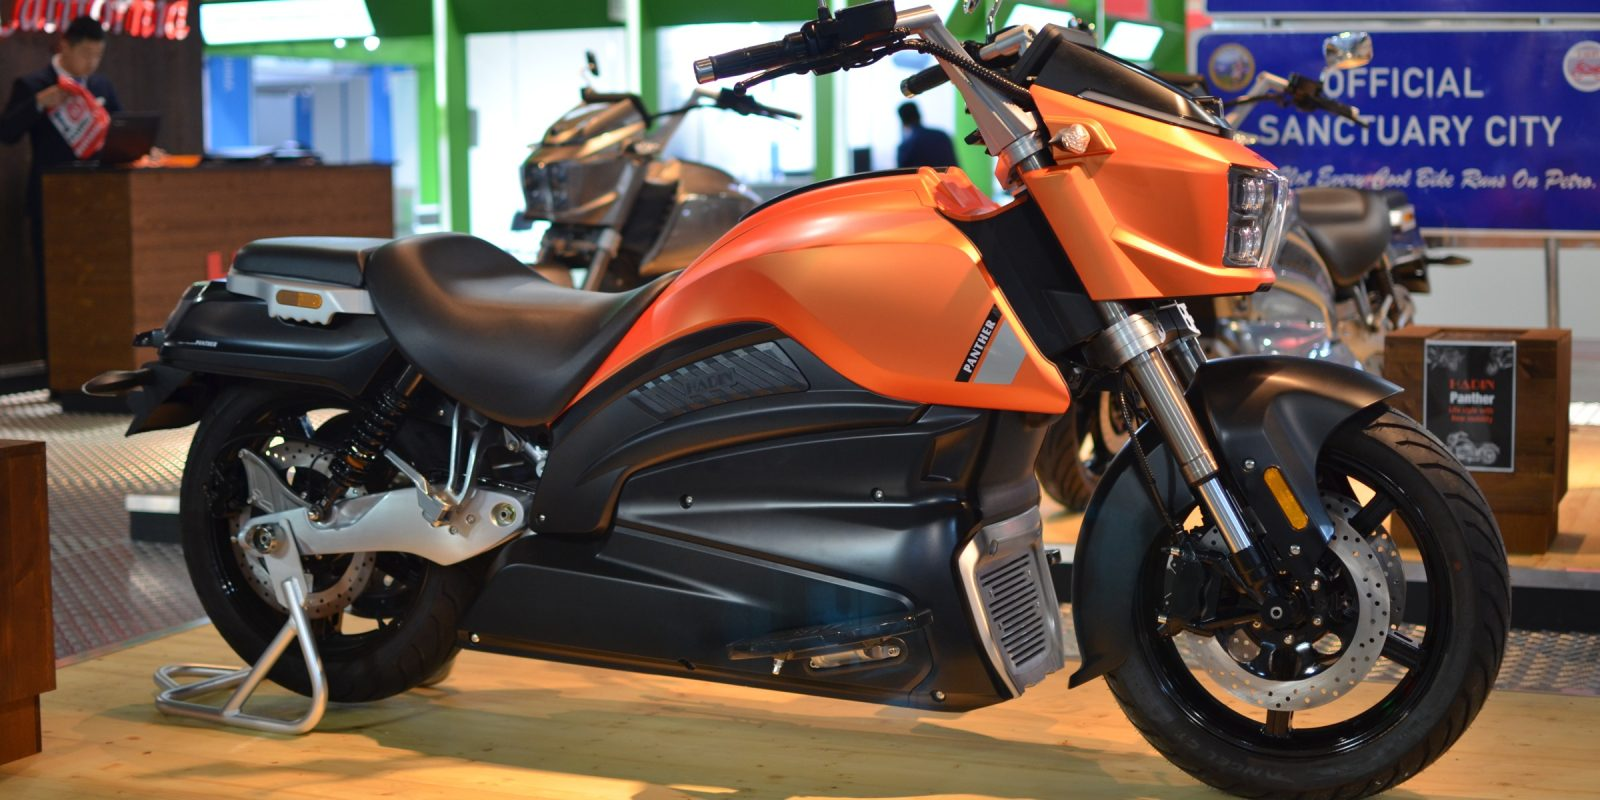 It turns out that this American-style cruiser electric motorcycle is legit